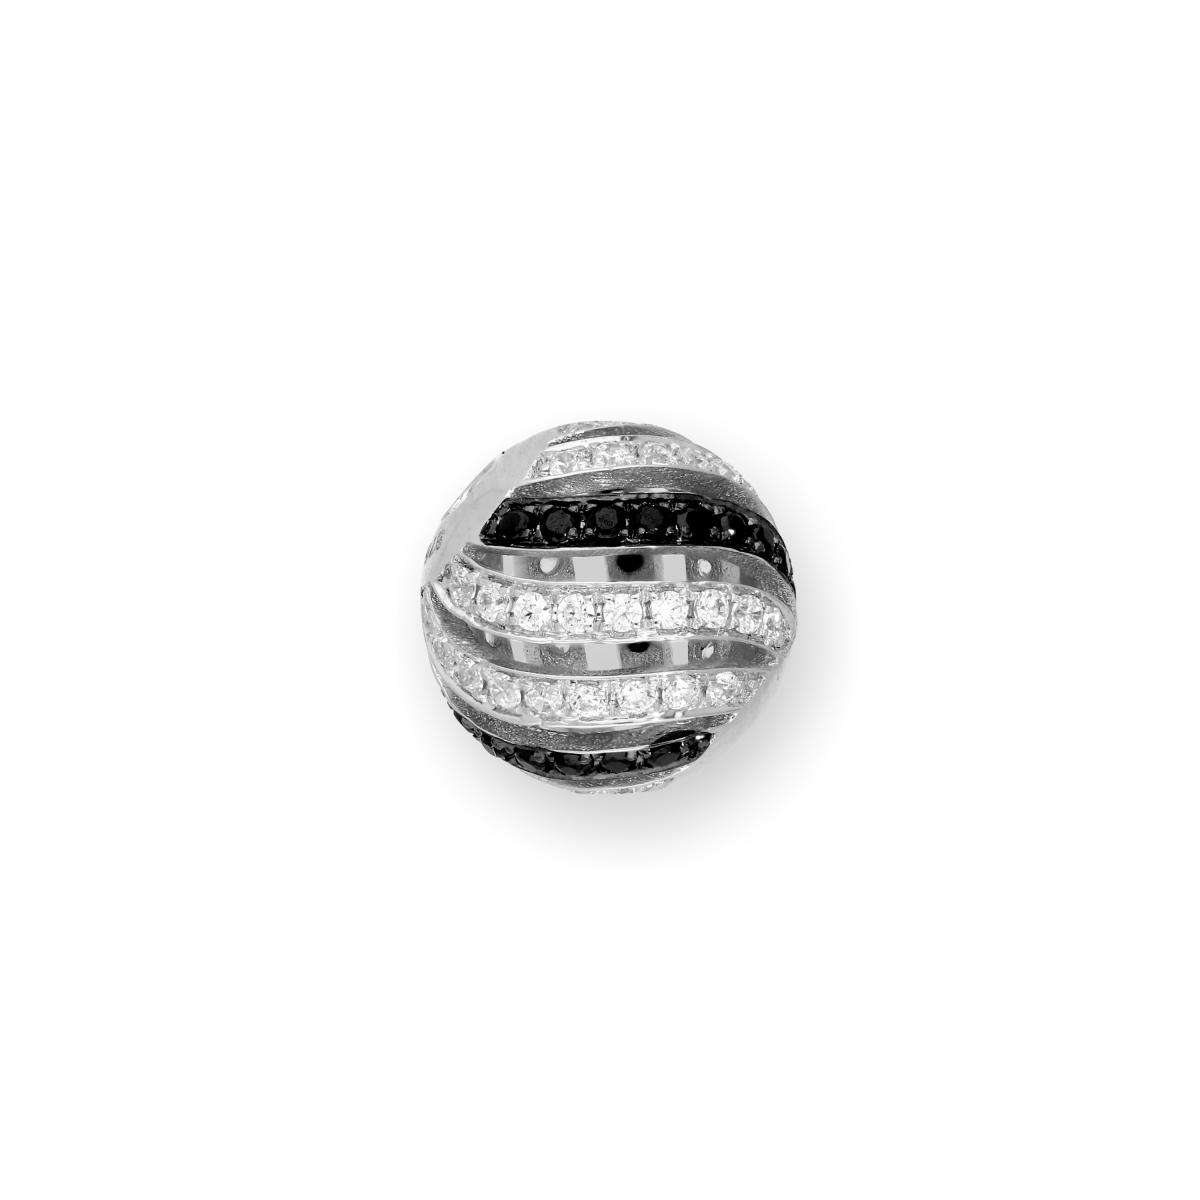 Alterative image for 9ct Rhodium Plated White Gold & CZ Crystal Open Waves Bead Charm